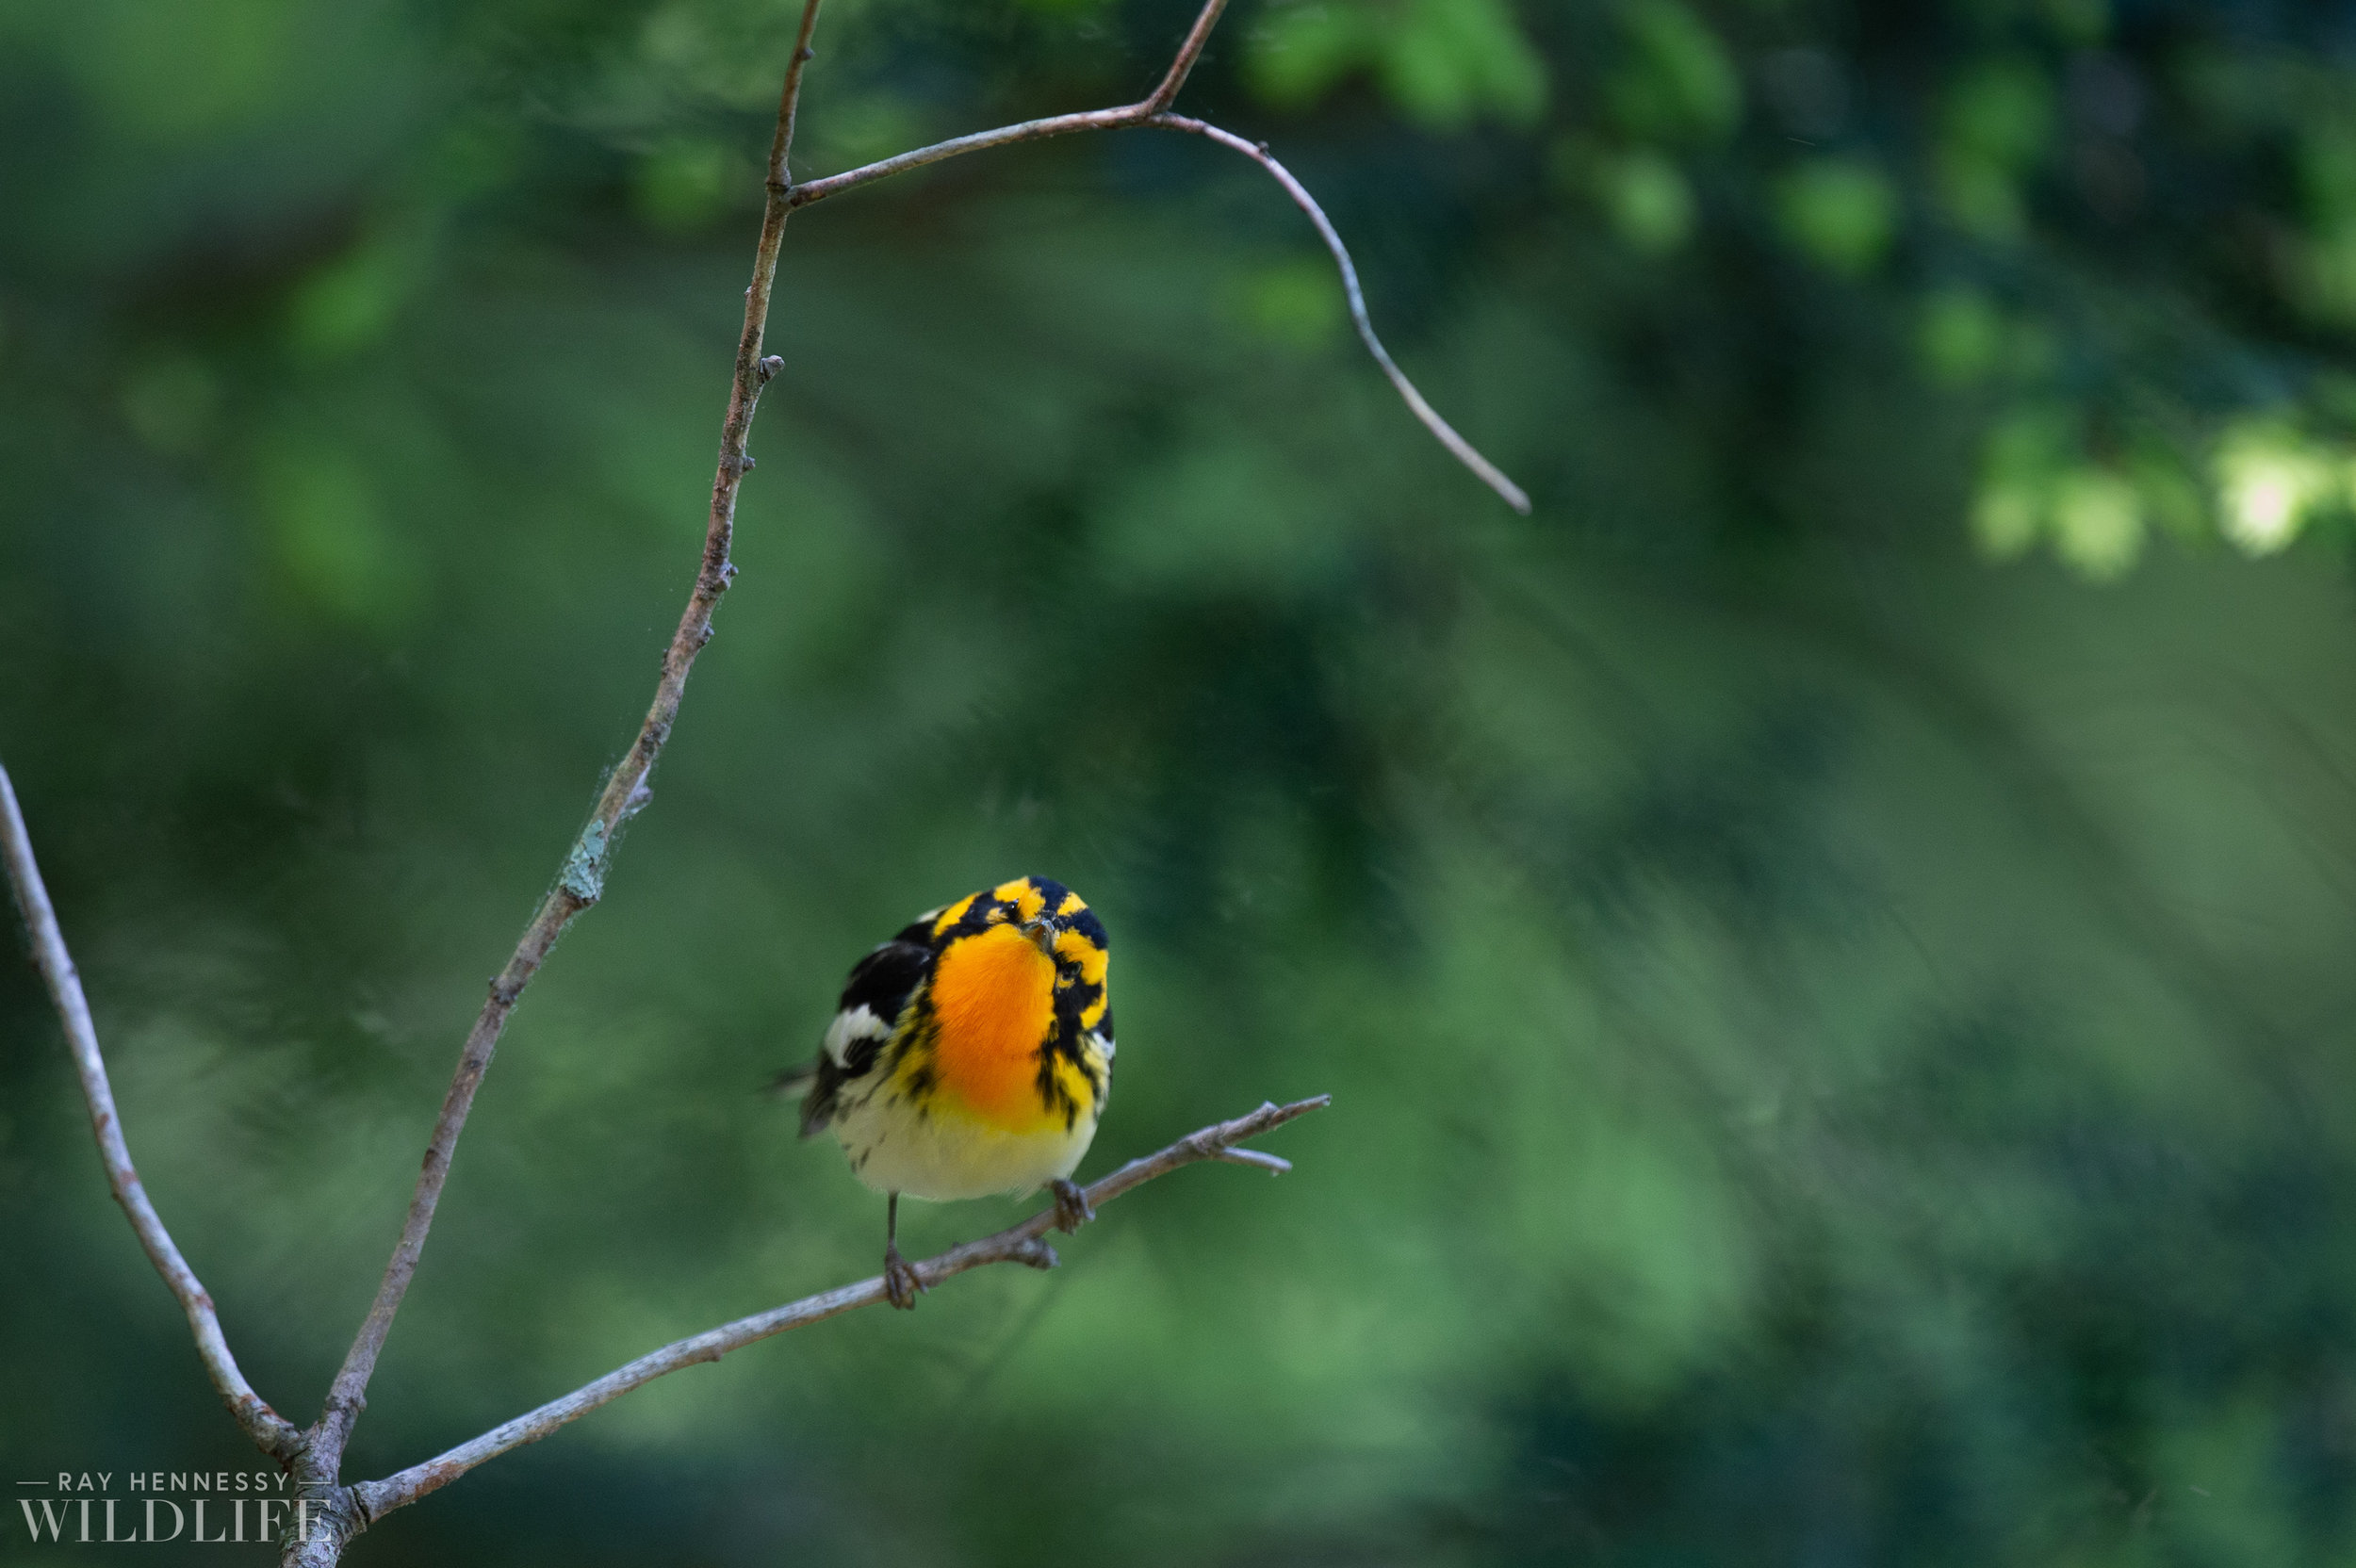 009_nothern-new-jersey-warblers.jpg